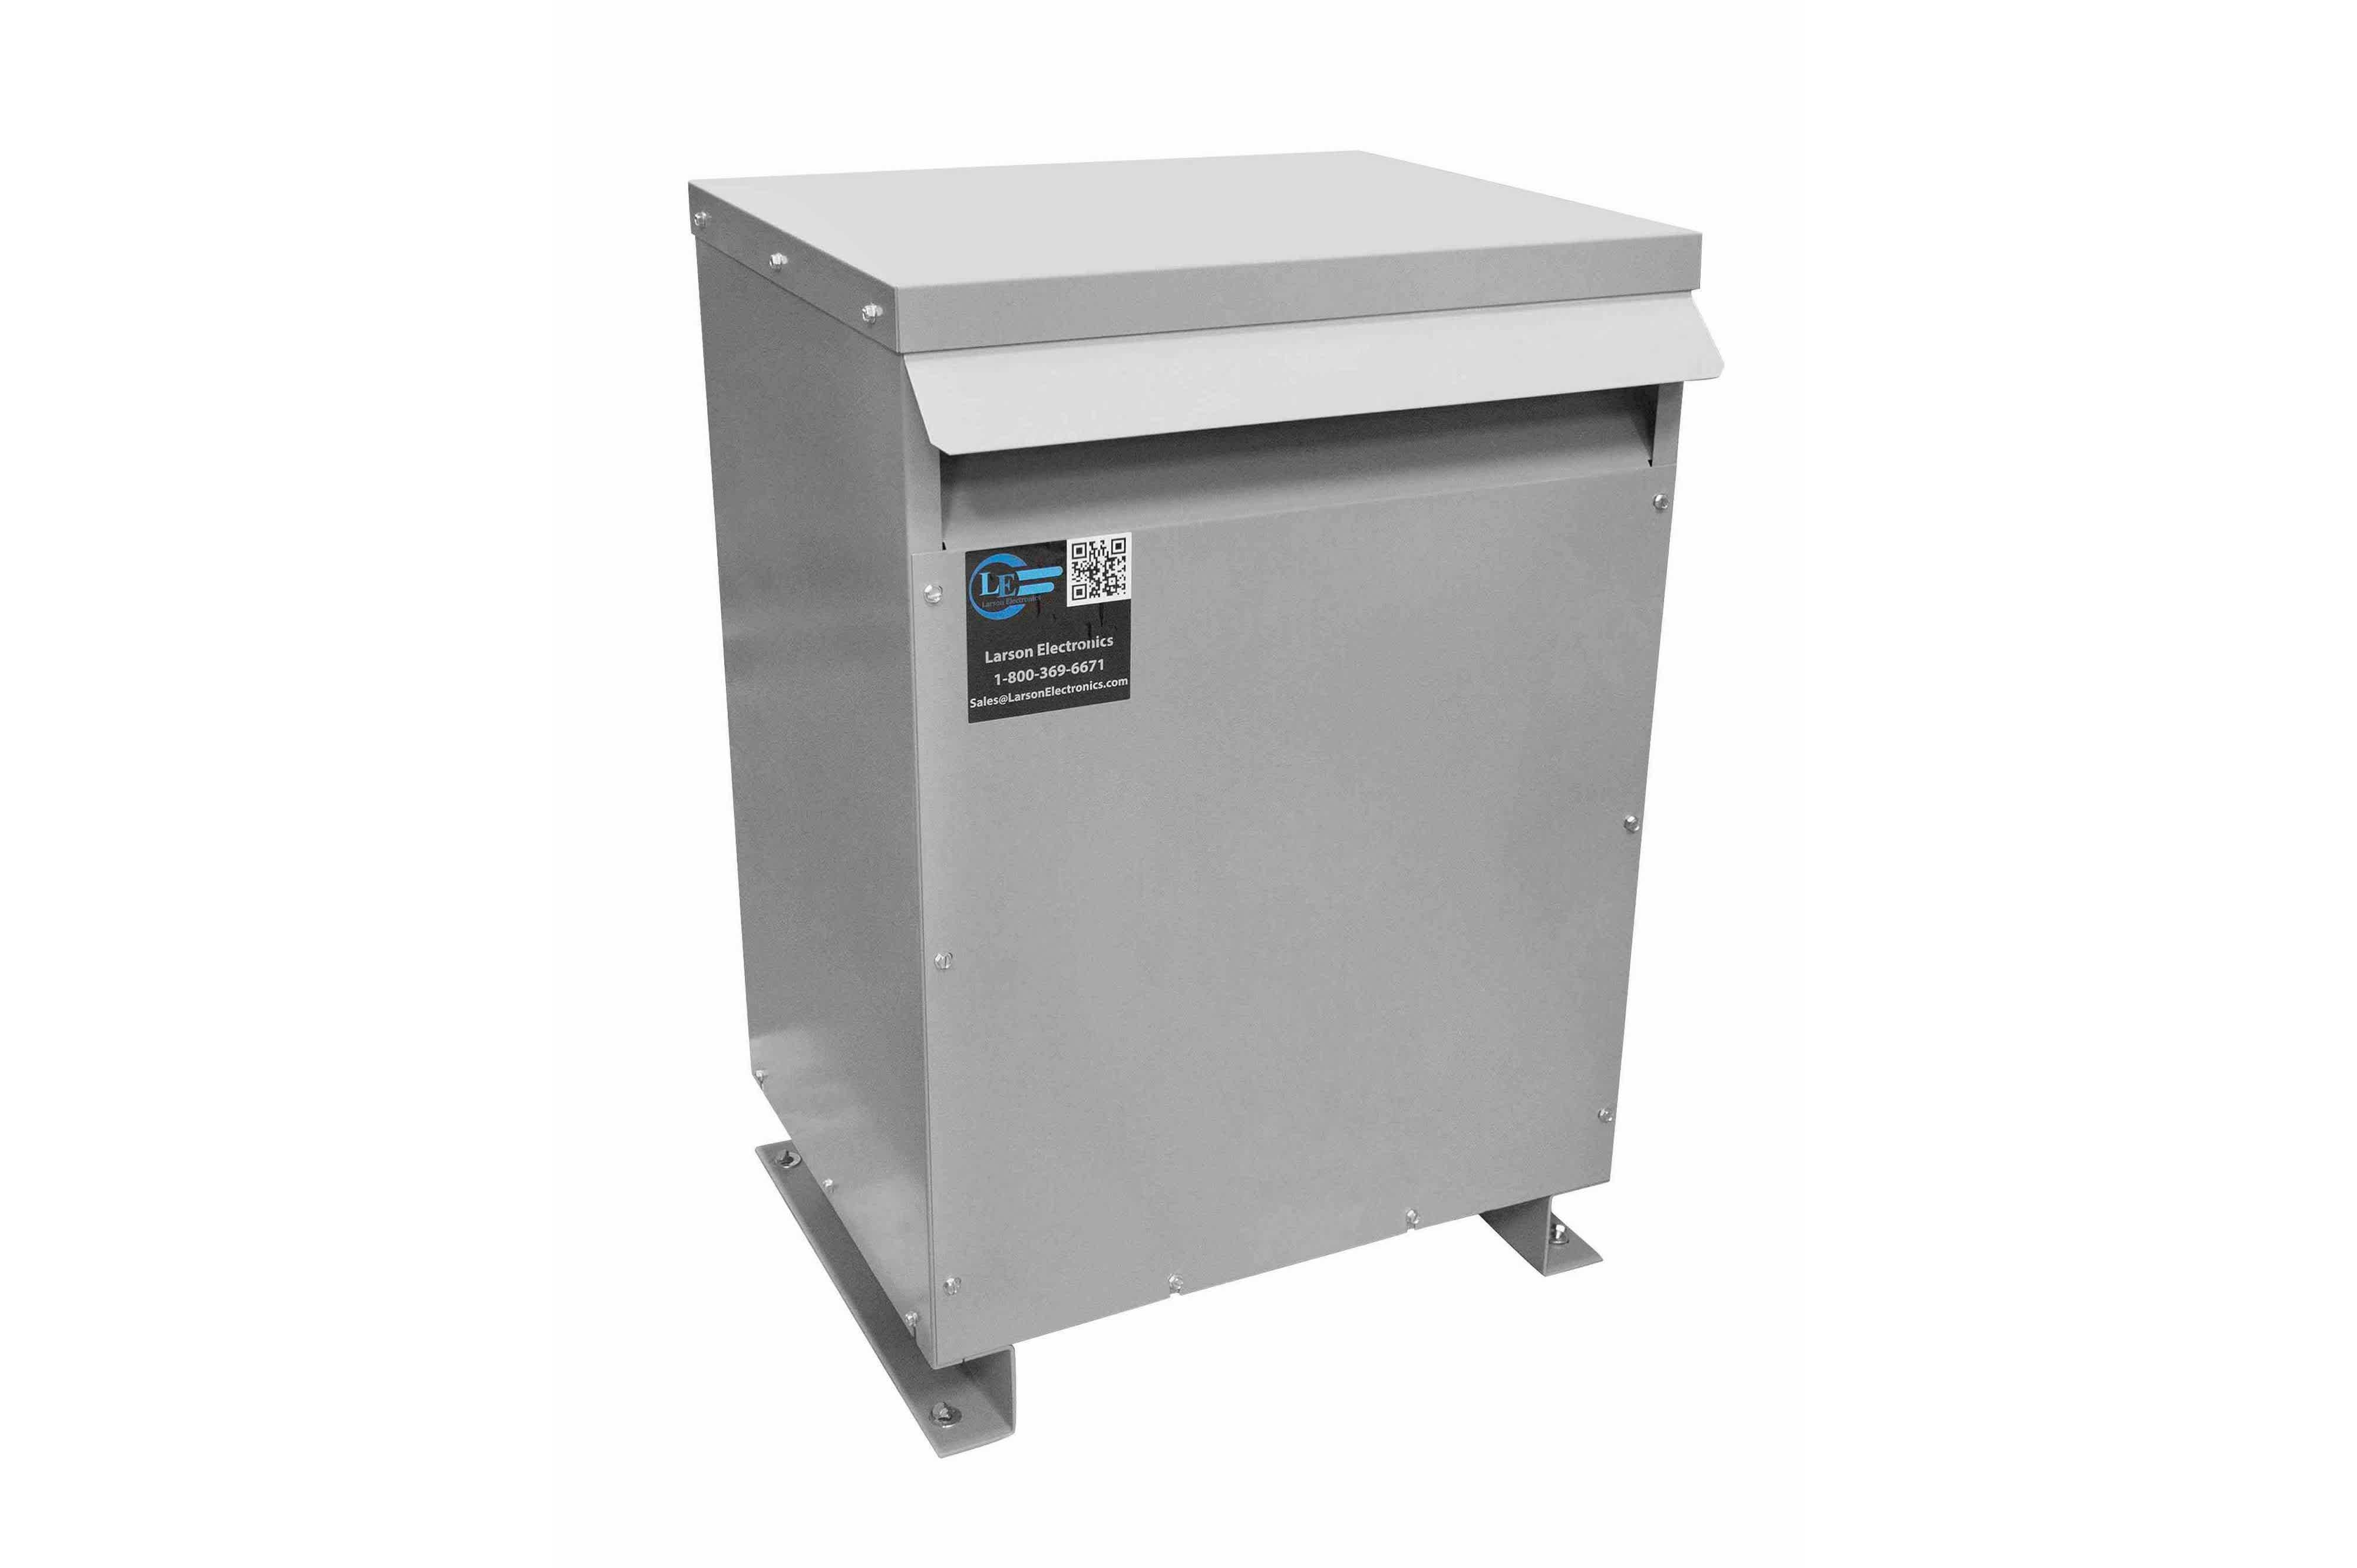 25 kVA 3PH Isolation Transformer, 440V Wye Primary, 240V/120 Delta Secondary, N3R, Ventilated, 60 Hz